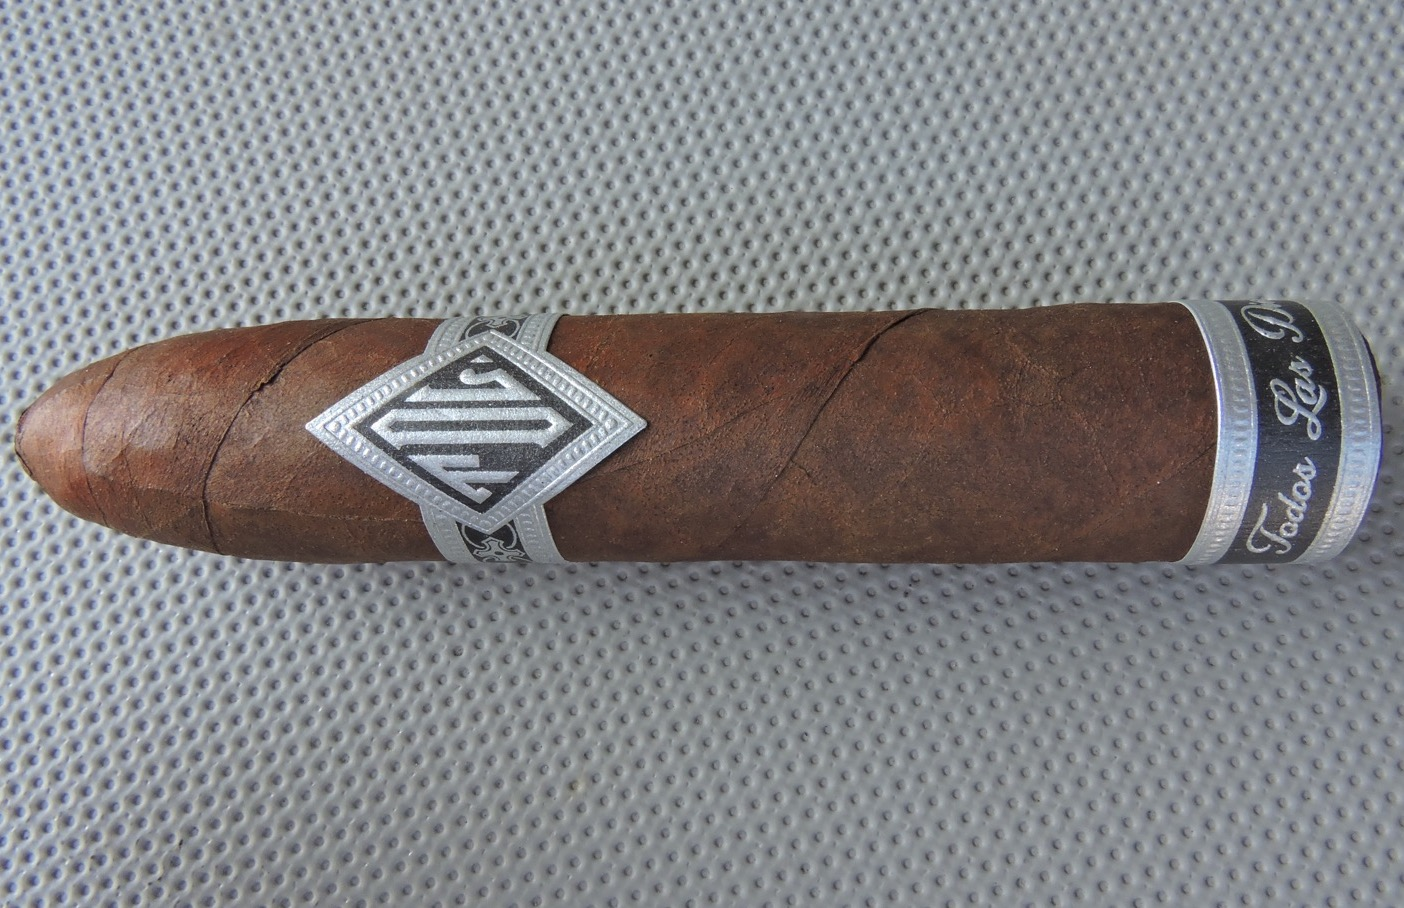 Todos Las Dias Double Wide_Belicoso by Dunbarton Tobacco and Trust